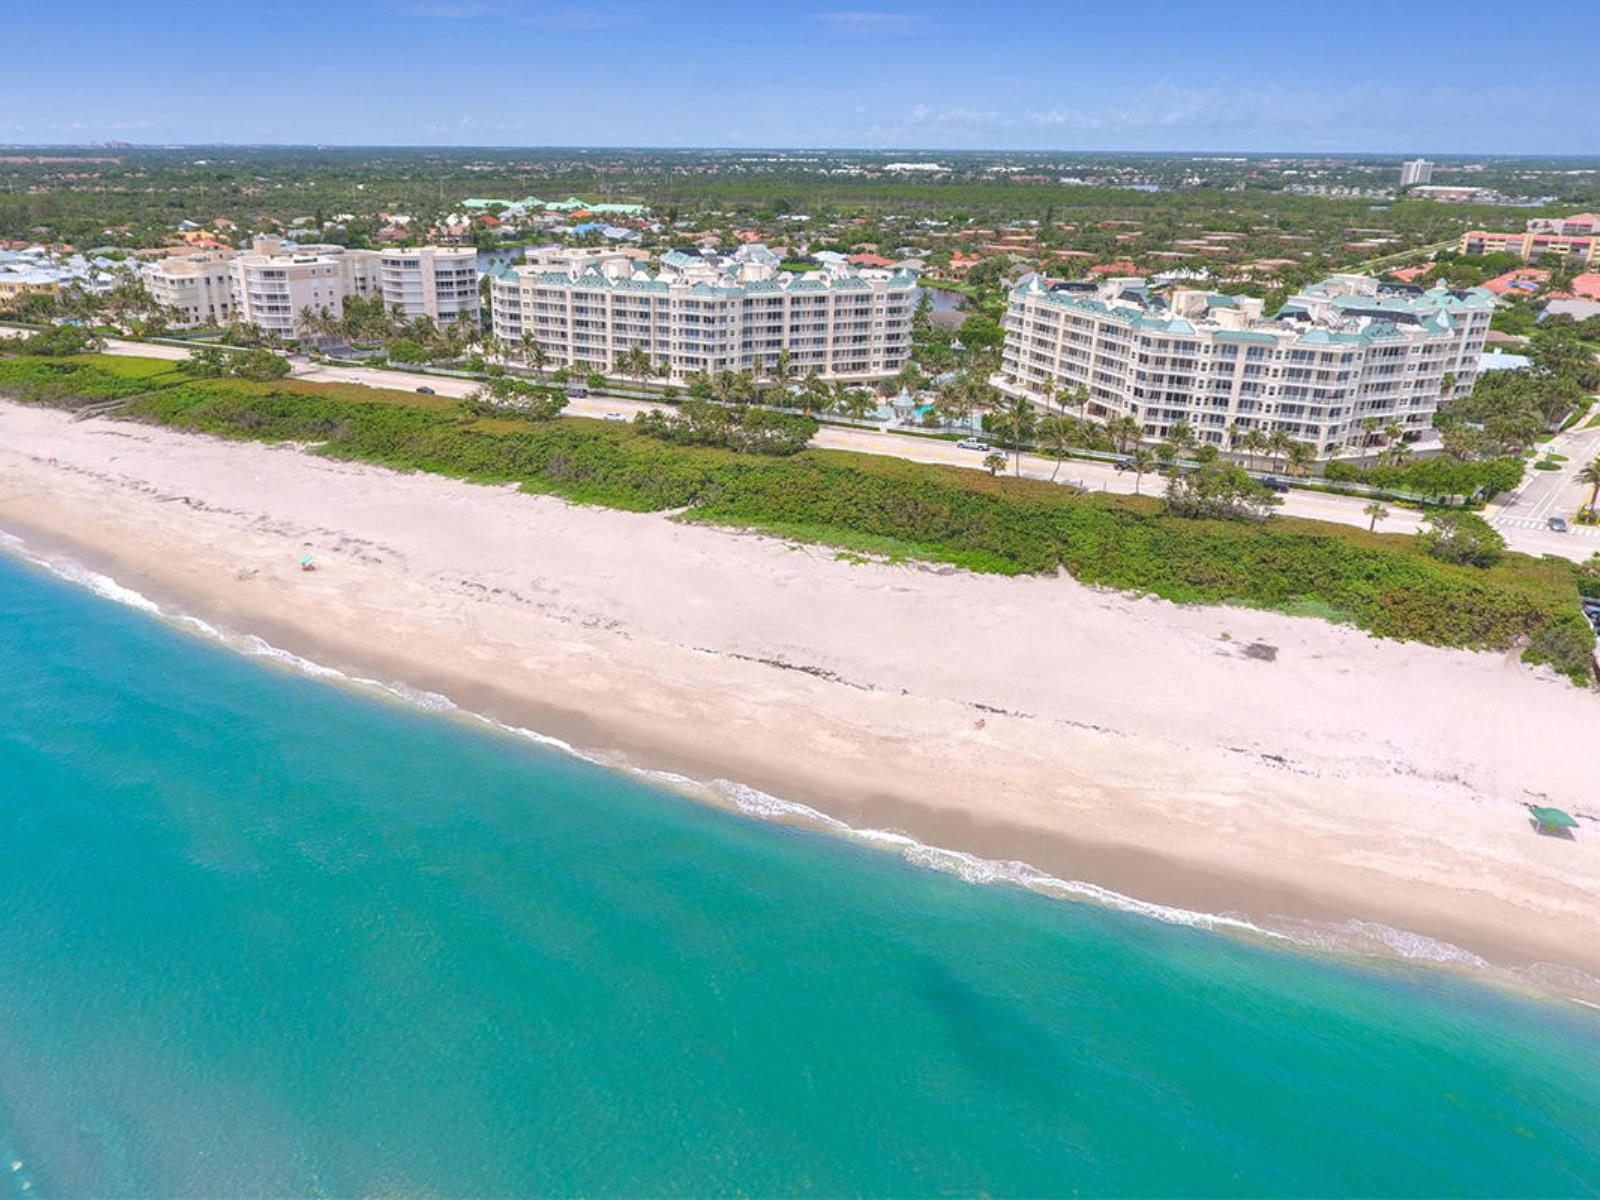 Spectacular 5th floor oceanfront condo located in the highly sought after Jupiter Ocean Grande community. You will be amazed at the endless turquoise blue ocean views from the moment you enter the front door throughout the entire living area & master bedroom. This luxury condo unit is professionally designed with upgrades throughout and features 3 bedrooms, 3 bathrooms, walk in closets, custom window treatments, gorgeous light fixtures, new cabinetry and quarts counter tops in the bathrooms, remarkable kitchen with granite counter tops and stainless steel appliances. This unit is open, bright, and in pristine condition.